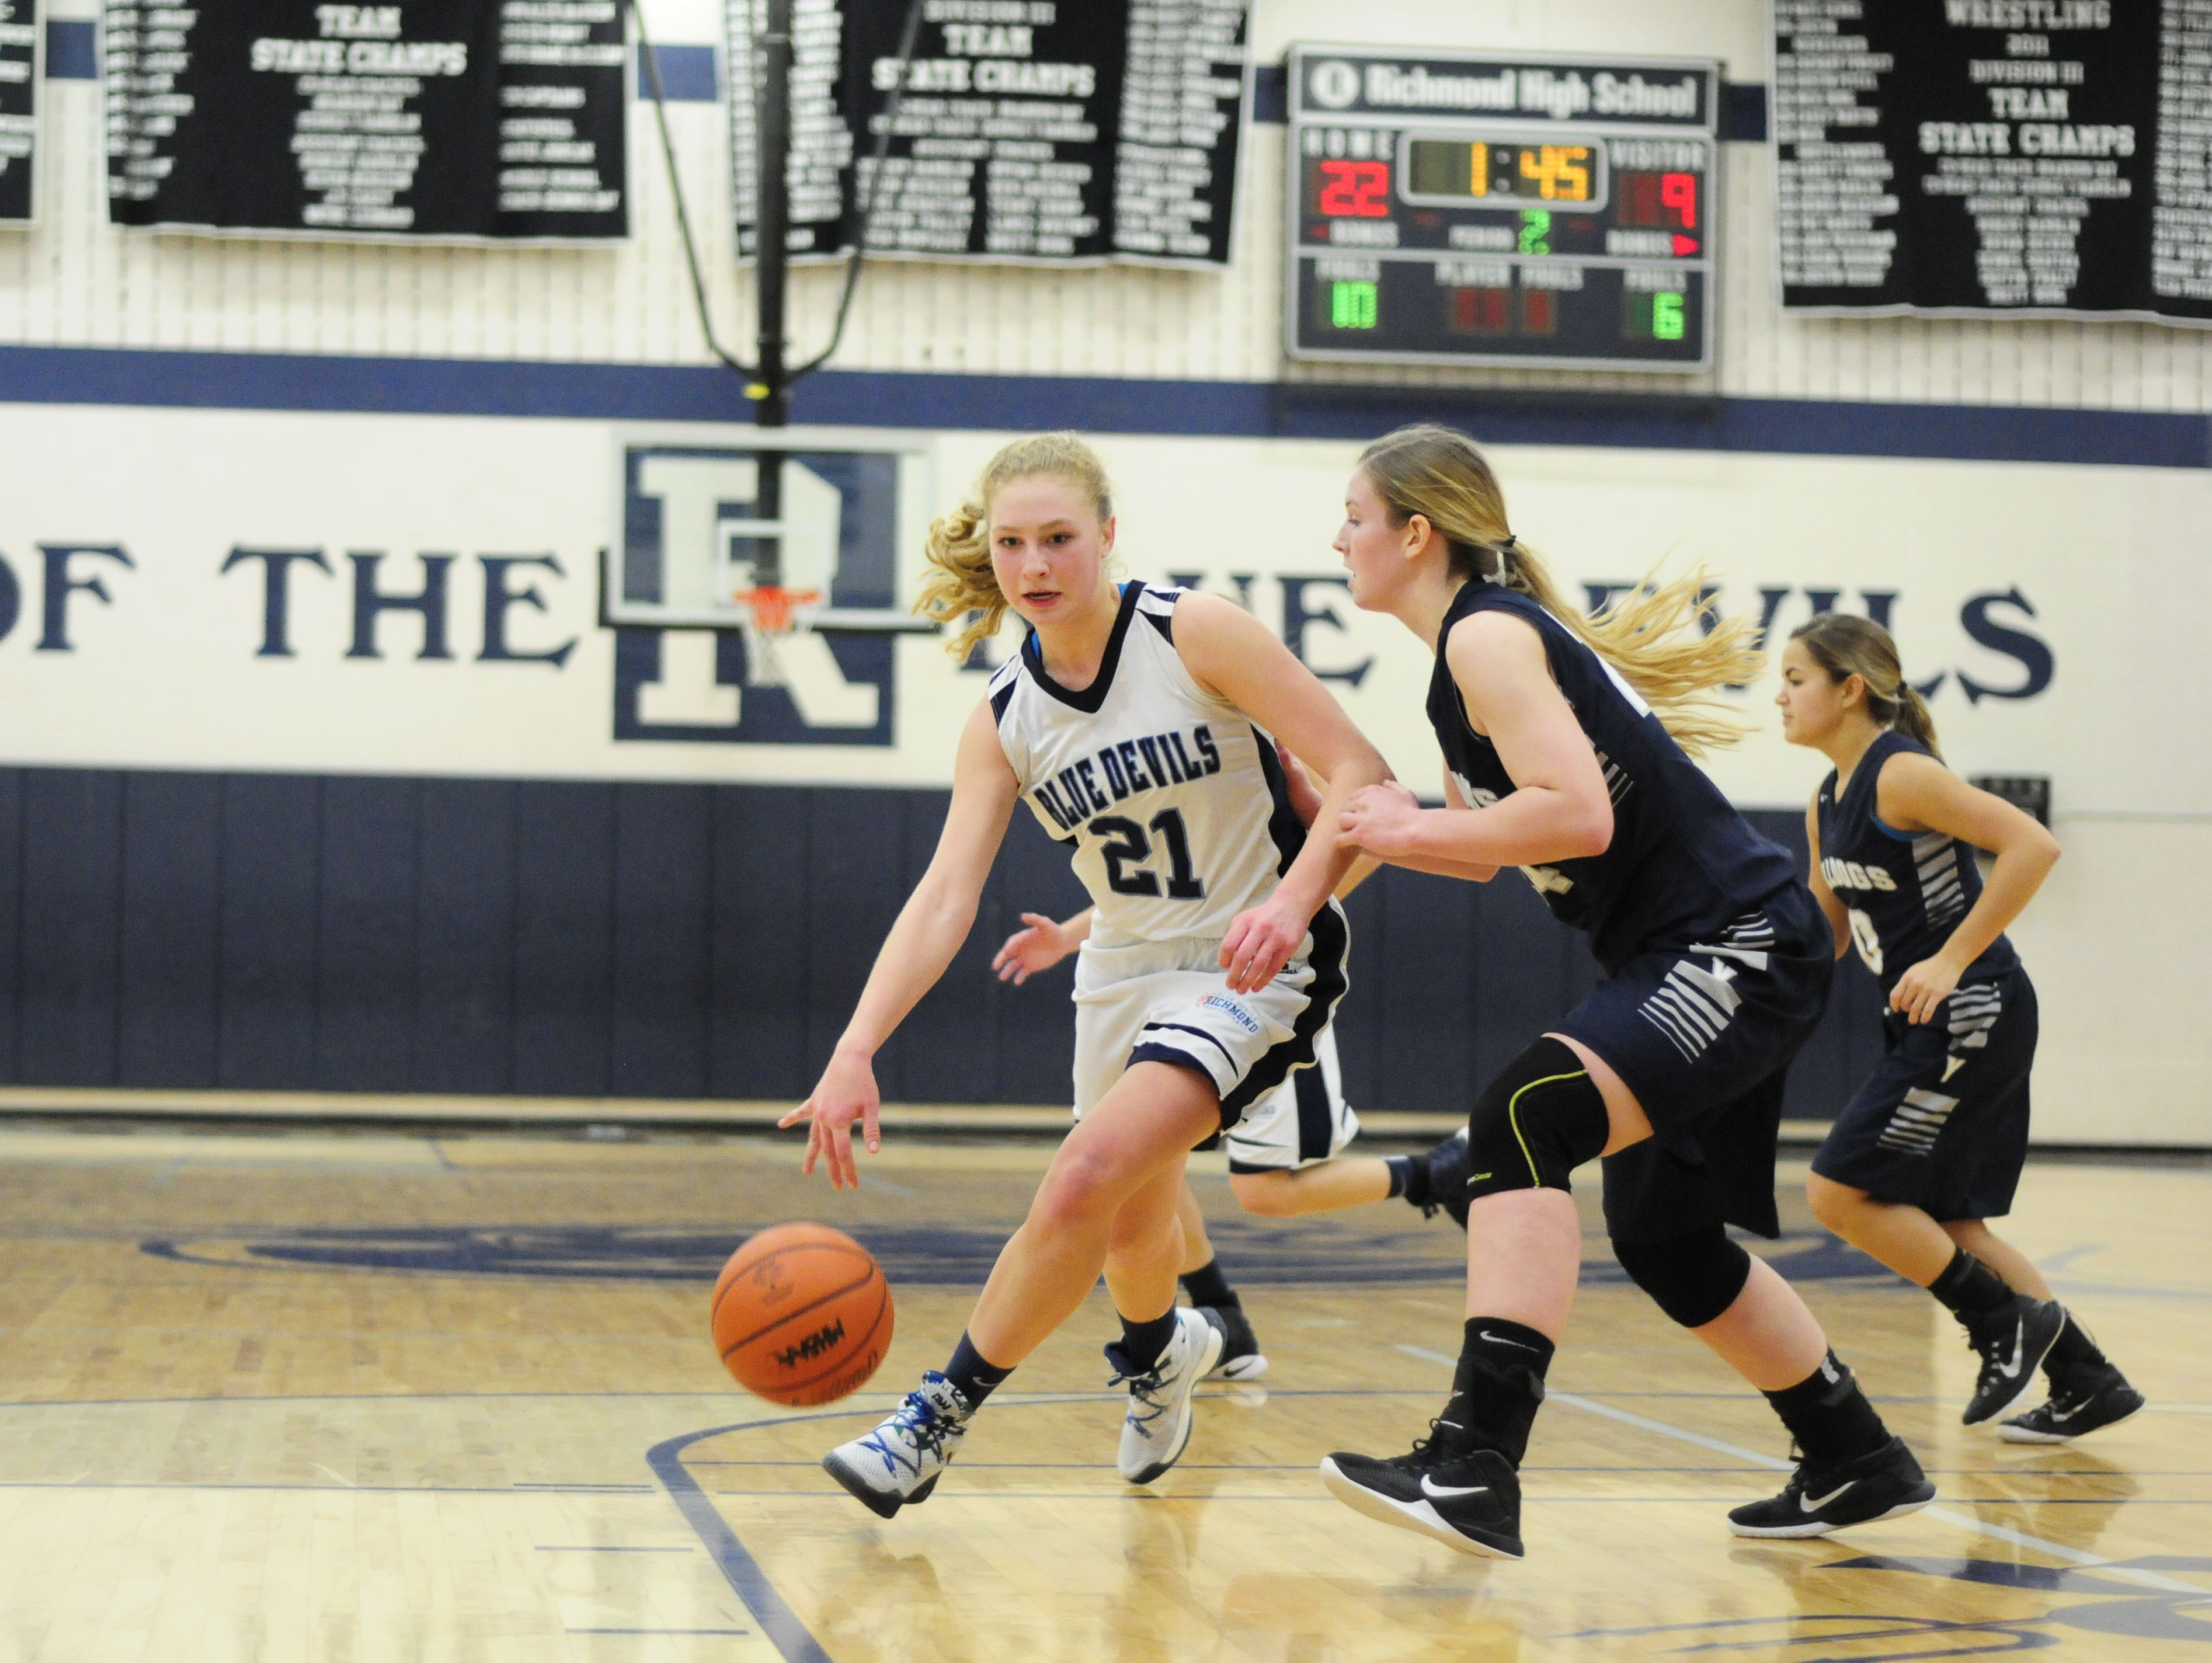 Richmond junior Jessica Weaver drives to the hoop against Yale on Dec. 15, 2016.